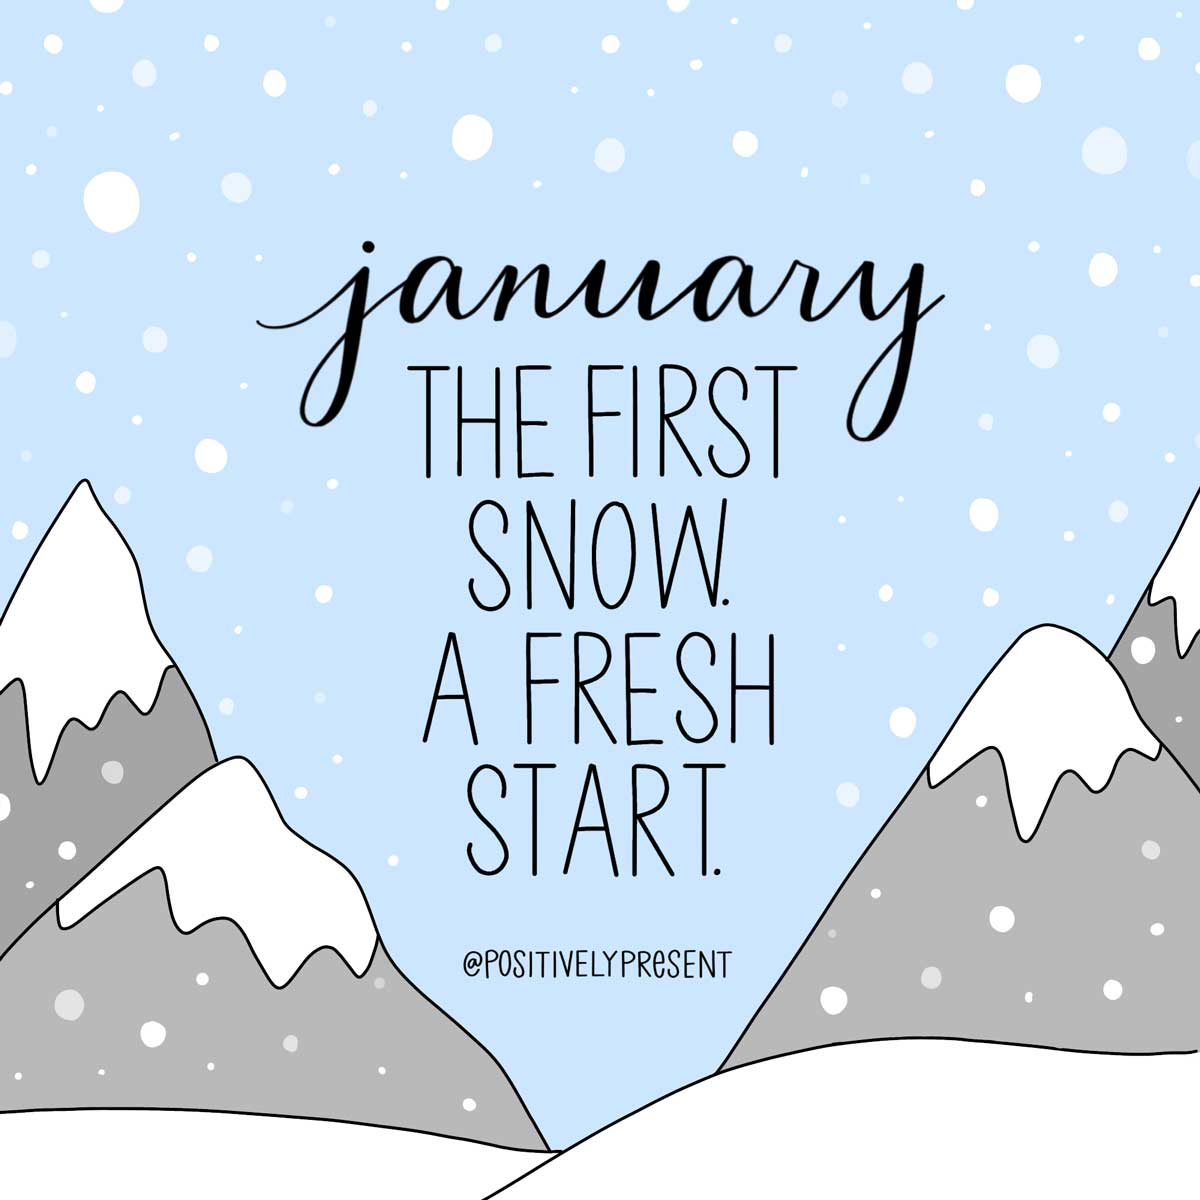 January First snow Fresh start text on drawing of snowy mountains.